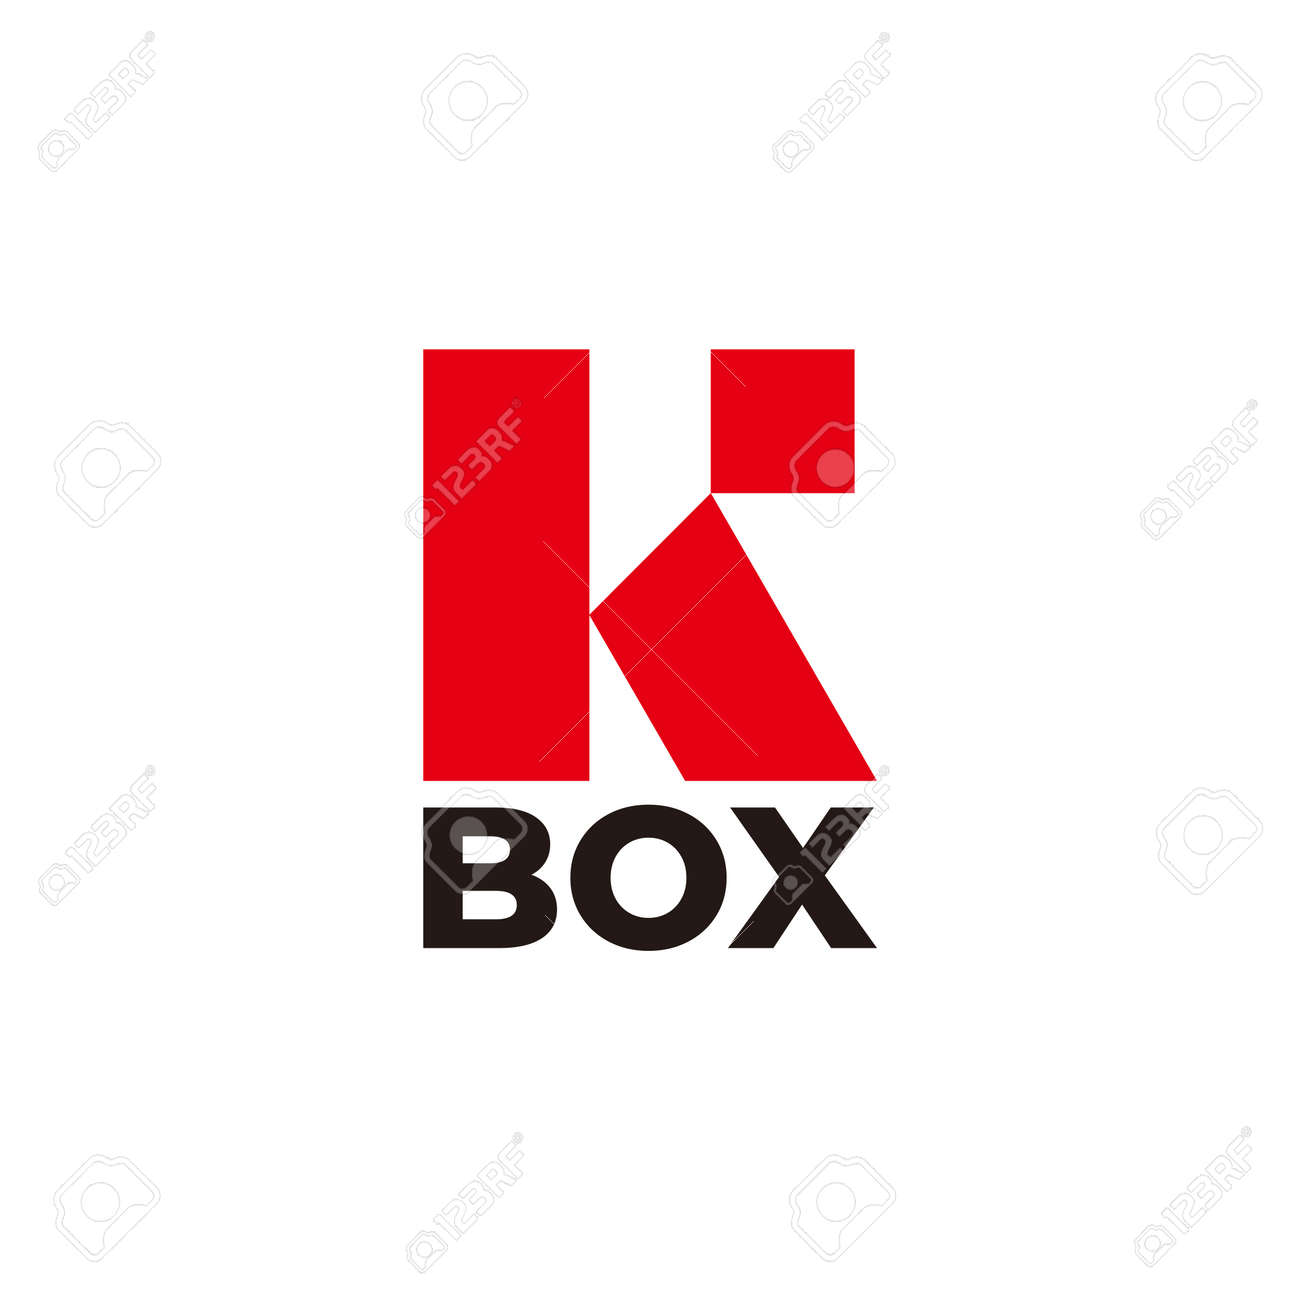 vector of letter r square box simple flat geometric - 160894896